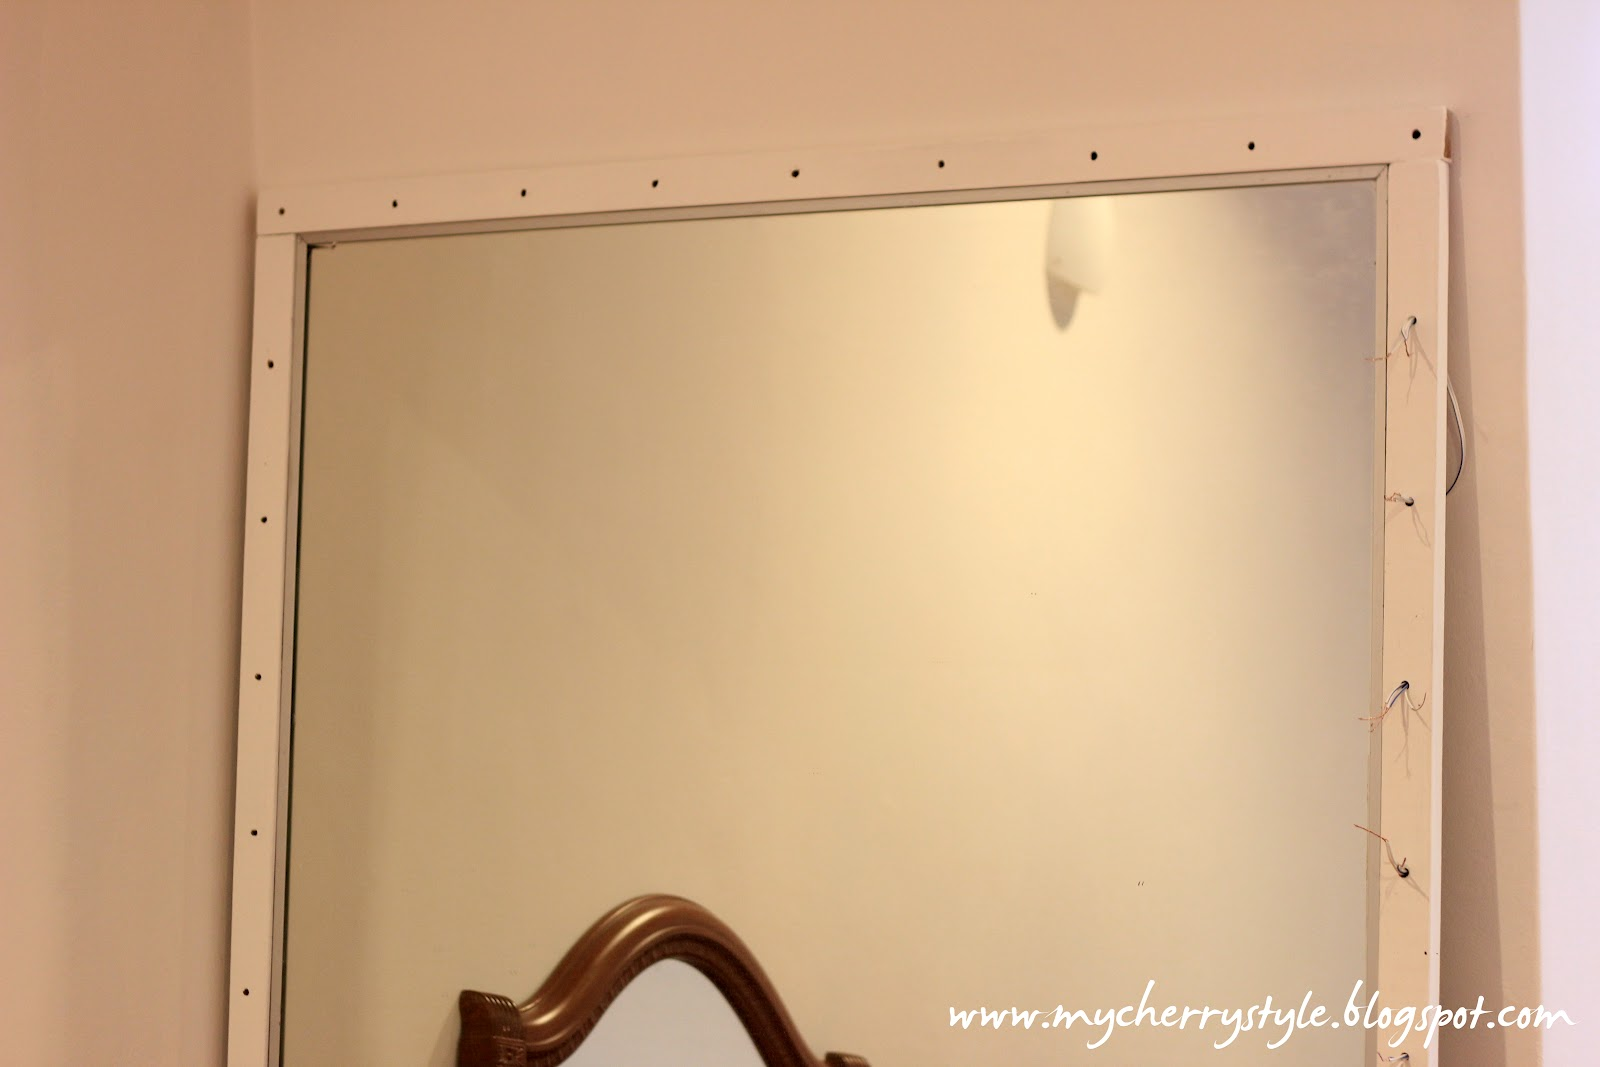 diy hollywood vanity mirror with lights. DIY Hollywood Style Mirror With Lights  Tutorial From Scratch For Real My Cherry